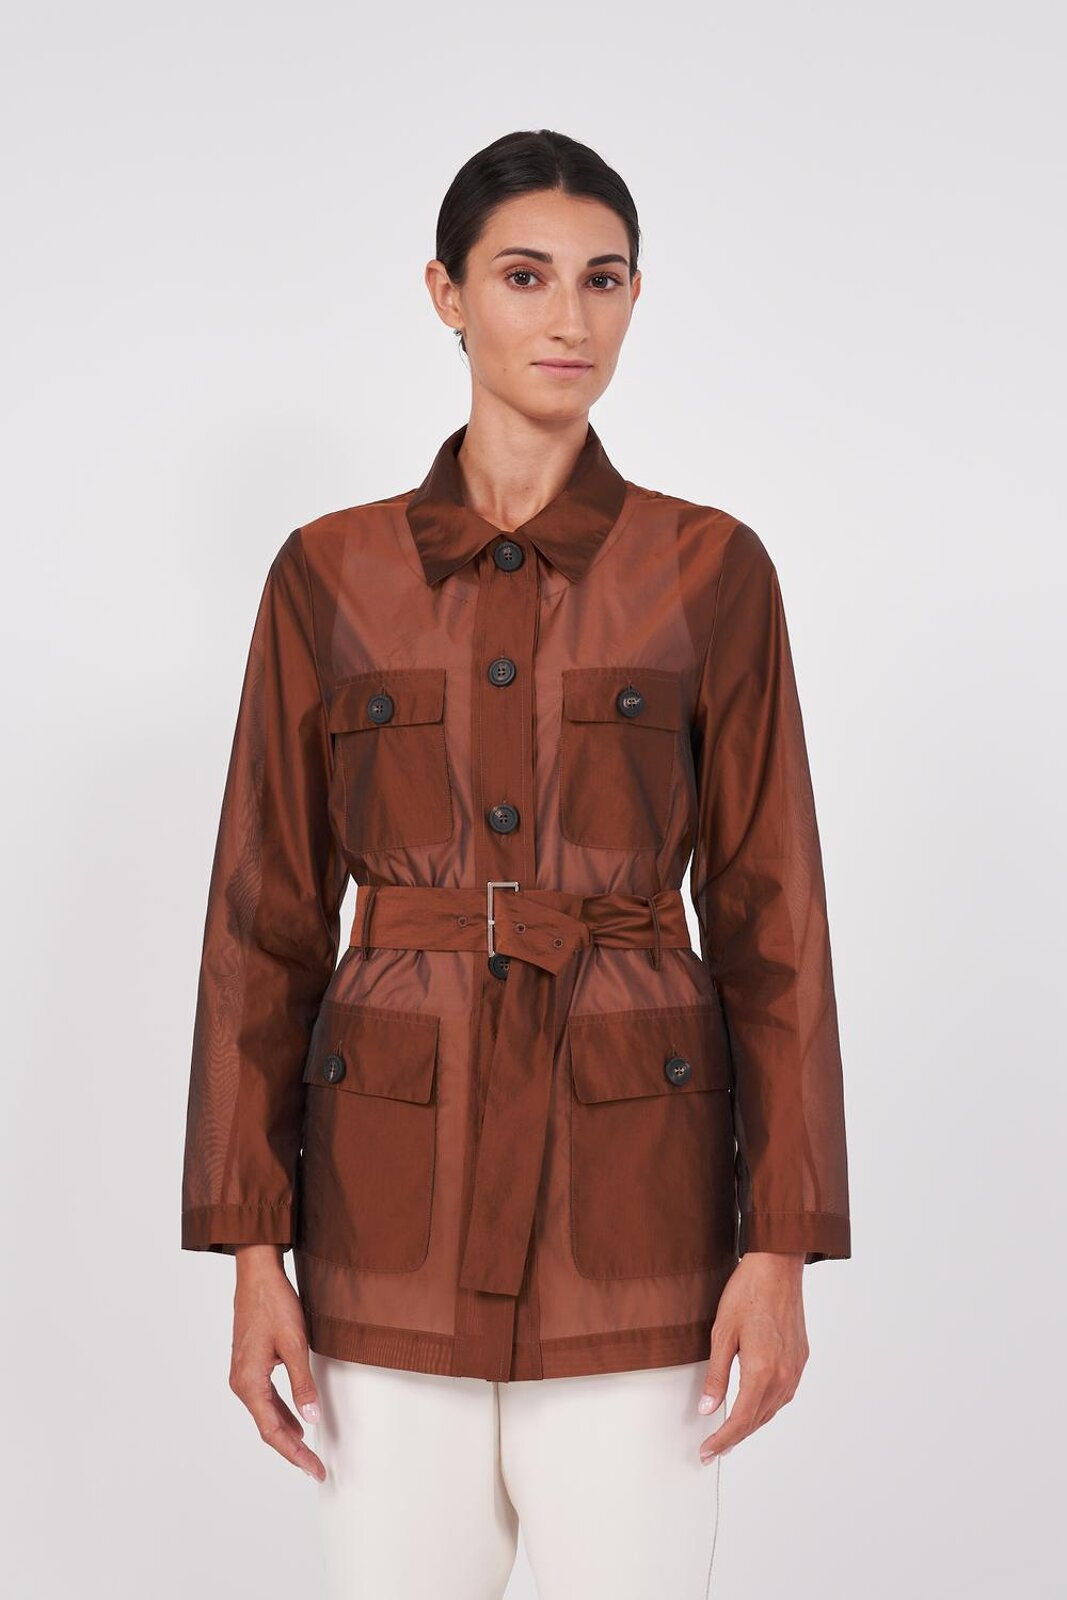 Long Sleeve Safari Style Jacket In Fluid And Slightly Transparent Organza. Two Pockets Applied On The Front, Front Button Closure, Adjustable Fabric Belt With Metal Buckle. Regular fit. - Peserico